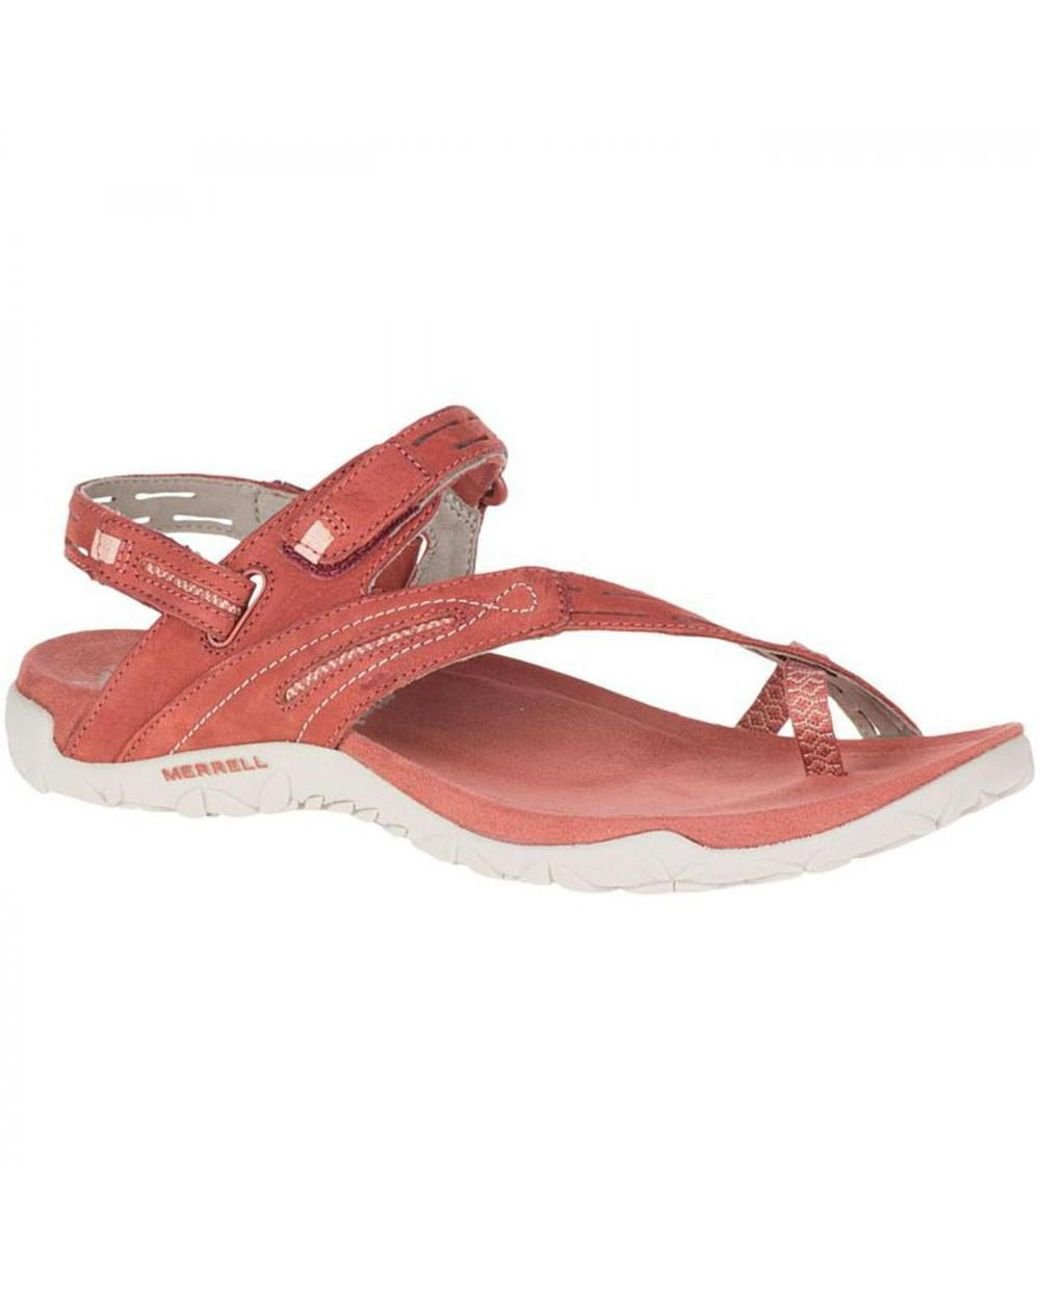 285893f7c708 Long-Touch to Zoom. Long-Touch to Zoom. 1  2  3  4  5  6  7  8. Merrell -  Multicolor Terran Convertible Ii Adjustable Walking Sandals - Lyst ...